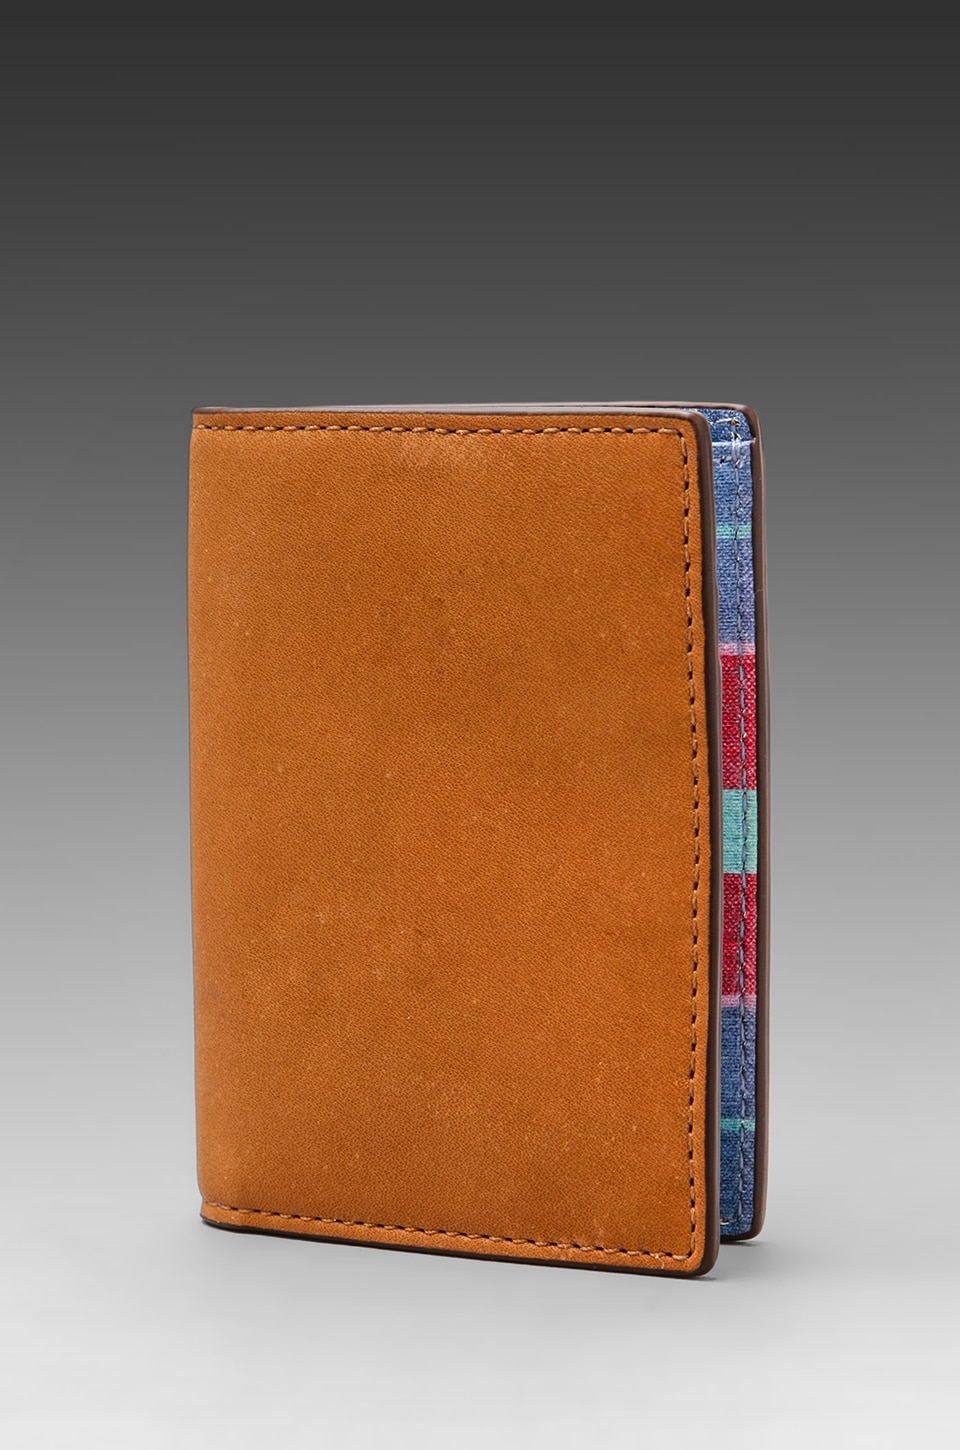 Jack Spade Madras Printed Leather Vertical Flap Wallet in Multi/Navy